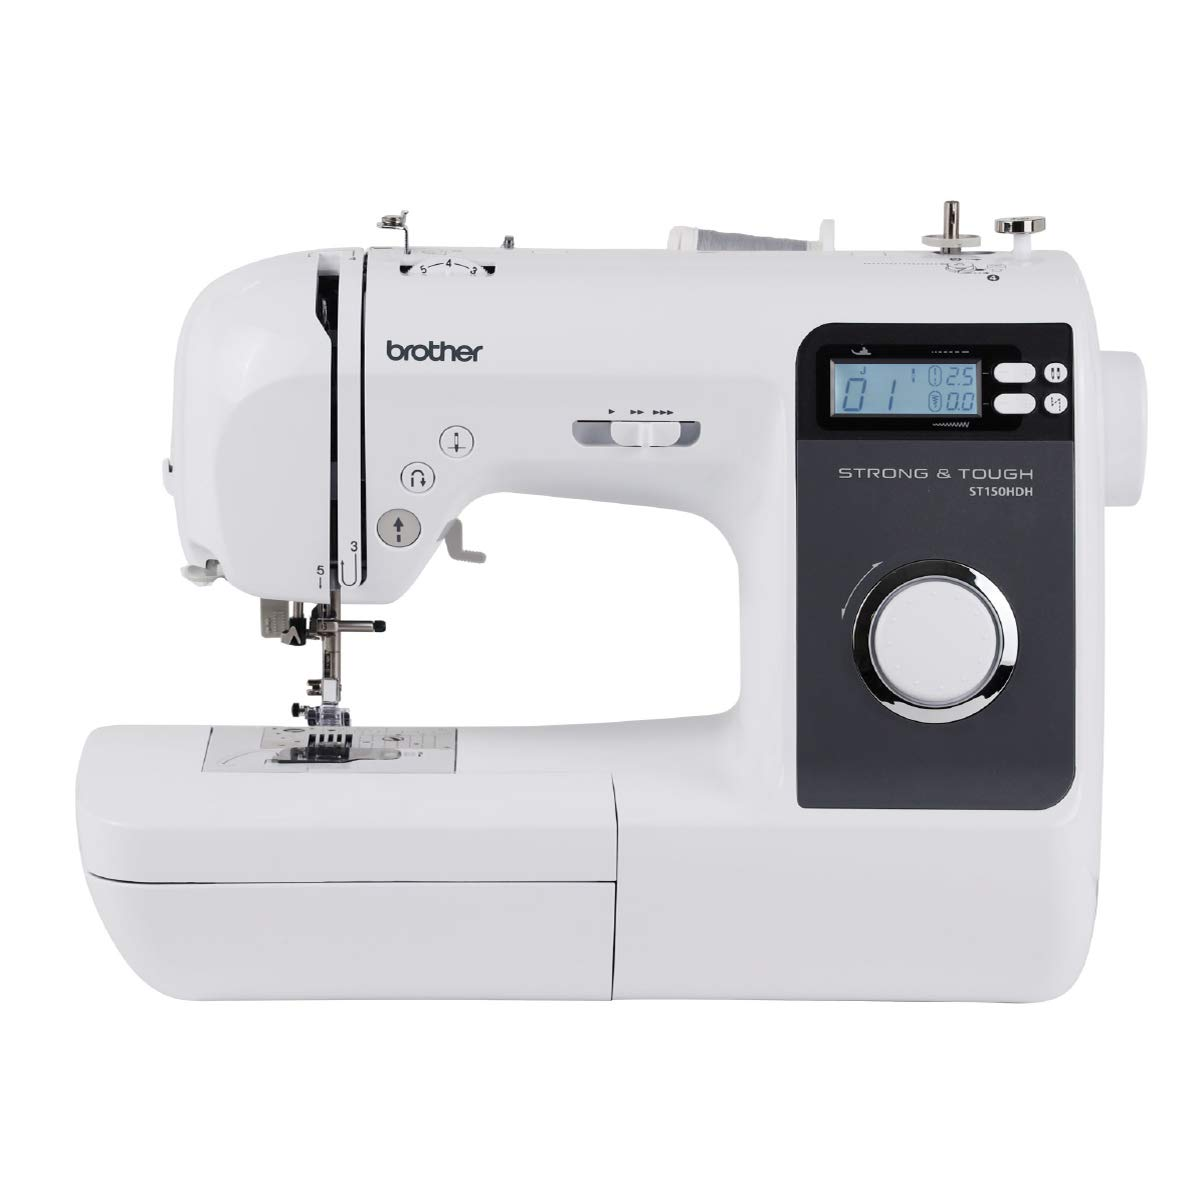 Best Strong and Tough:Brother ST150HDH Sewing Machine